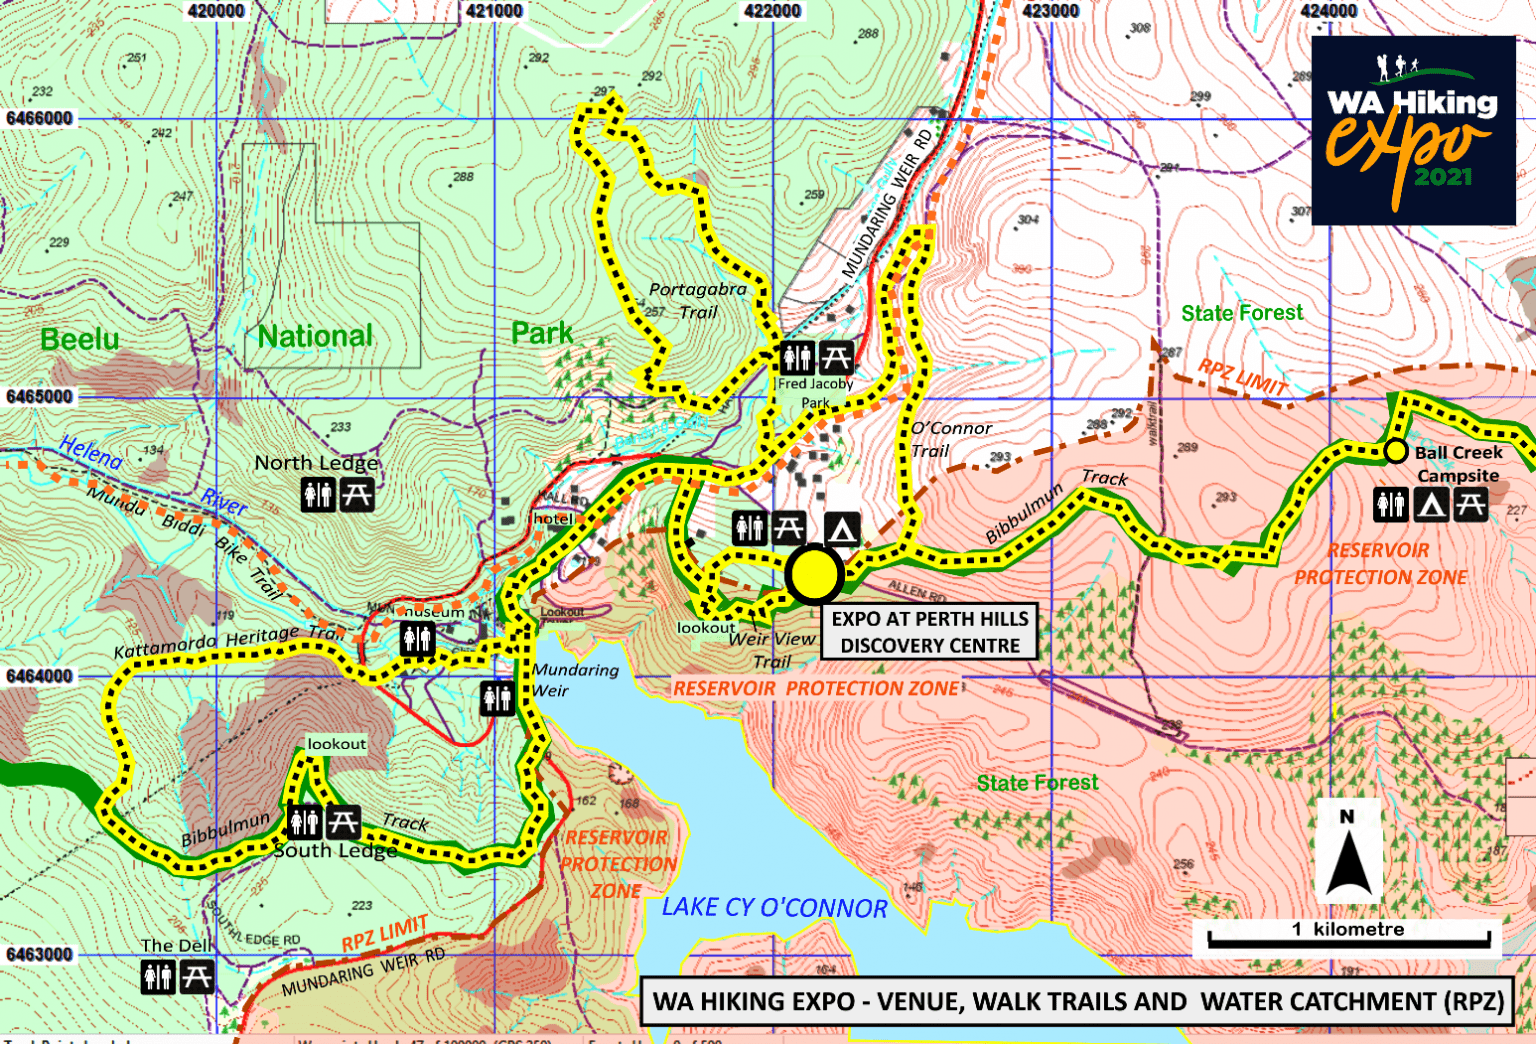 Hiking Expo Trails and Water Catchment Overview Map 2021 HikeWest redn